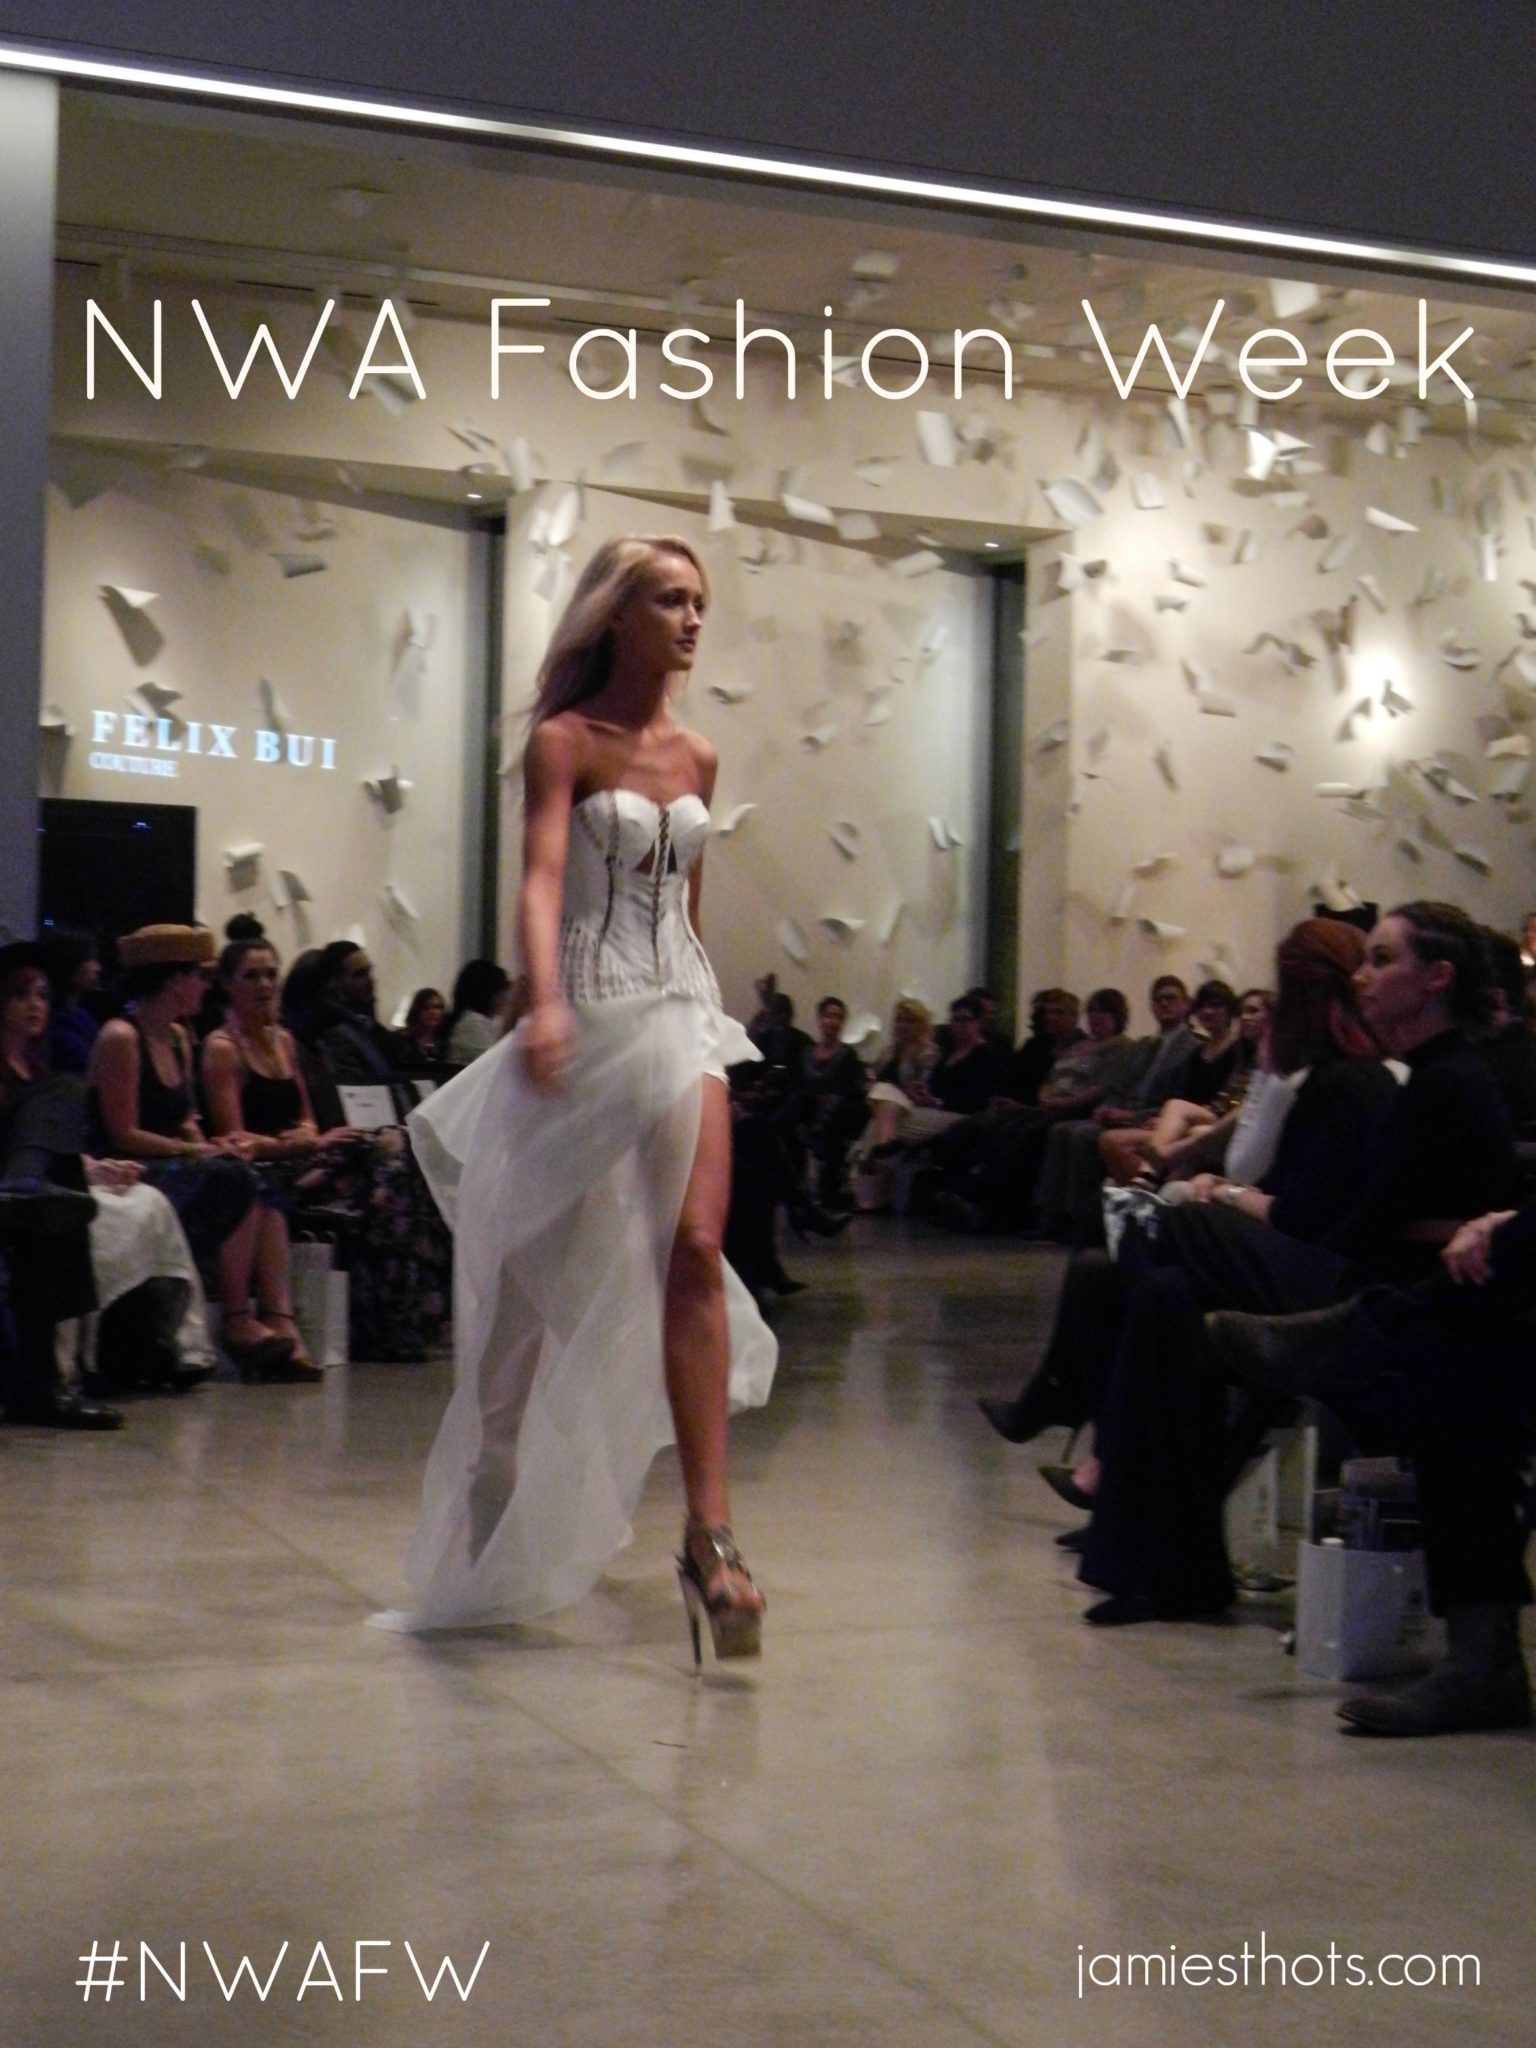 NWA Fashion Week teaches fashion as art, provides awareness for local charity